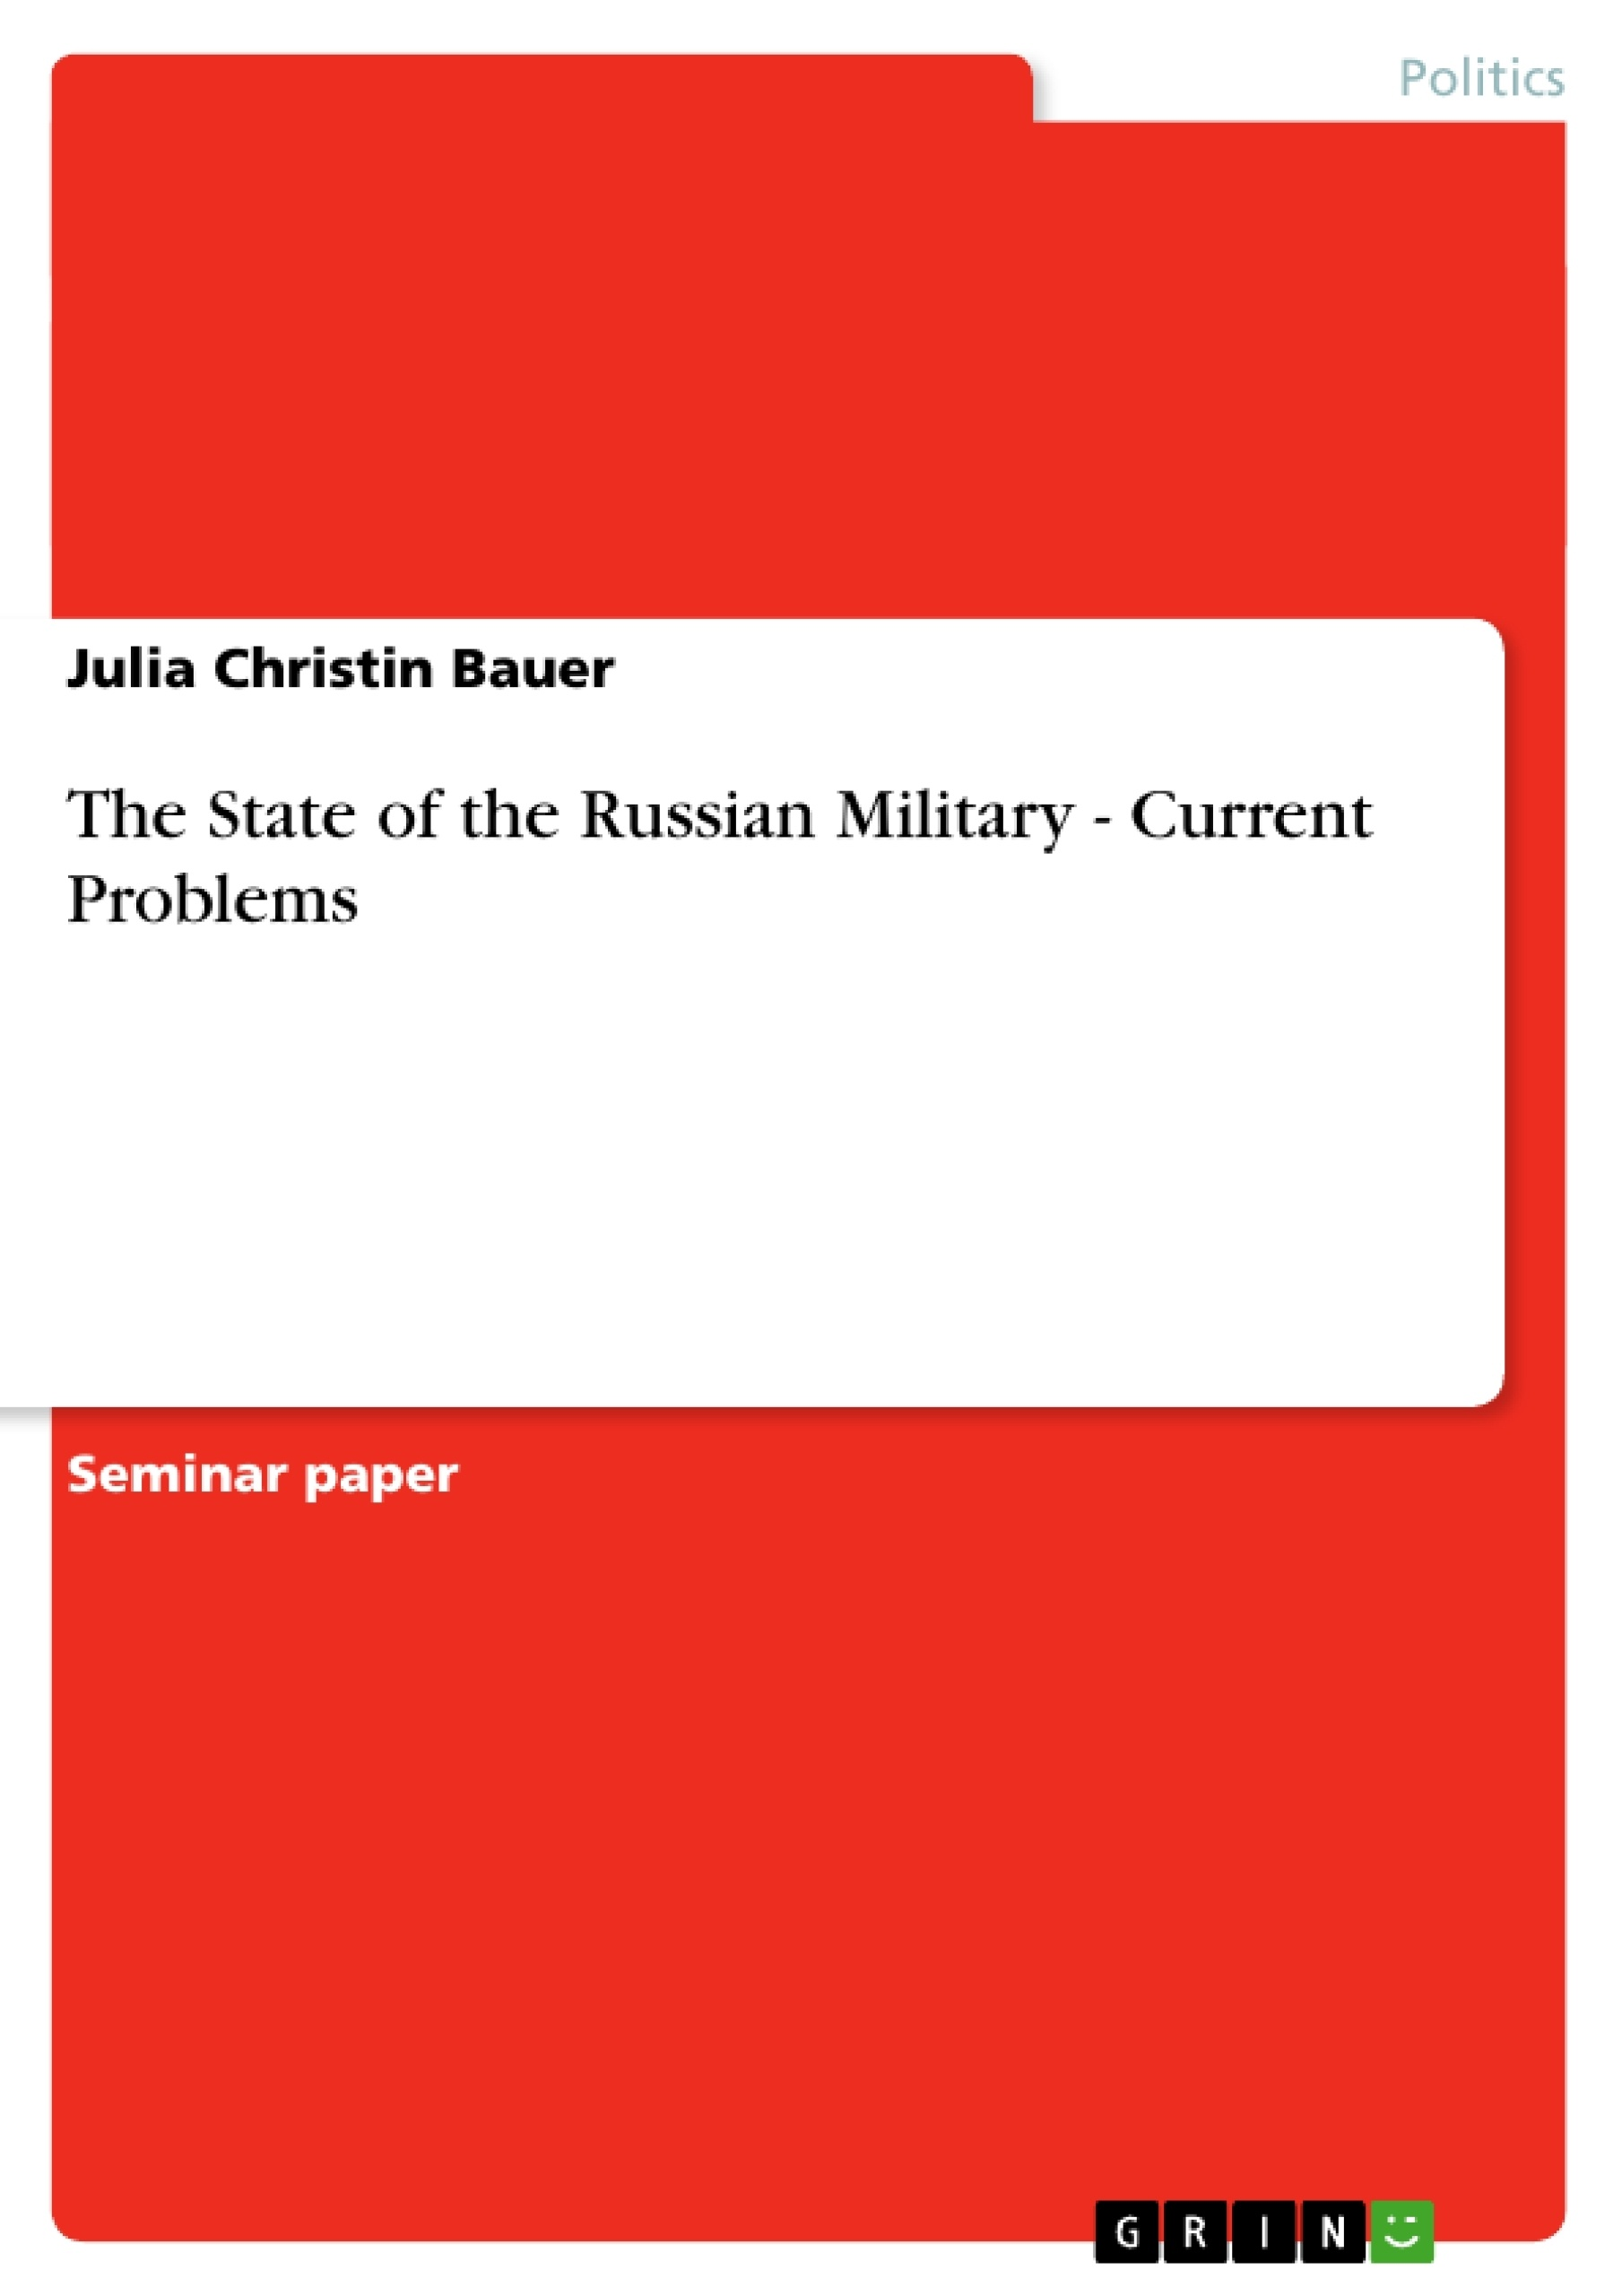 Title: The State of the Russian Military - Current Problems